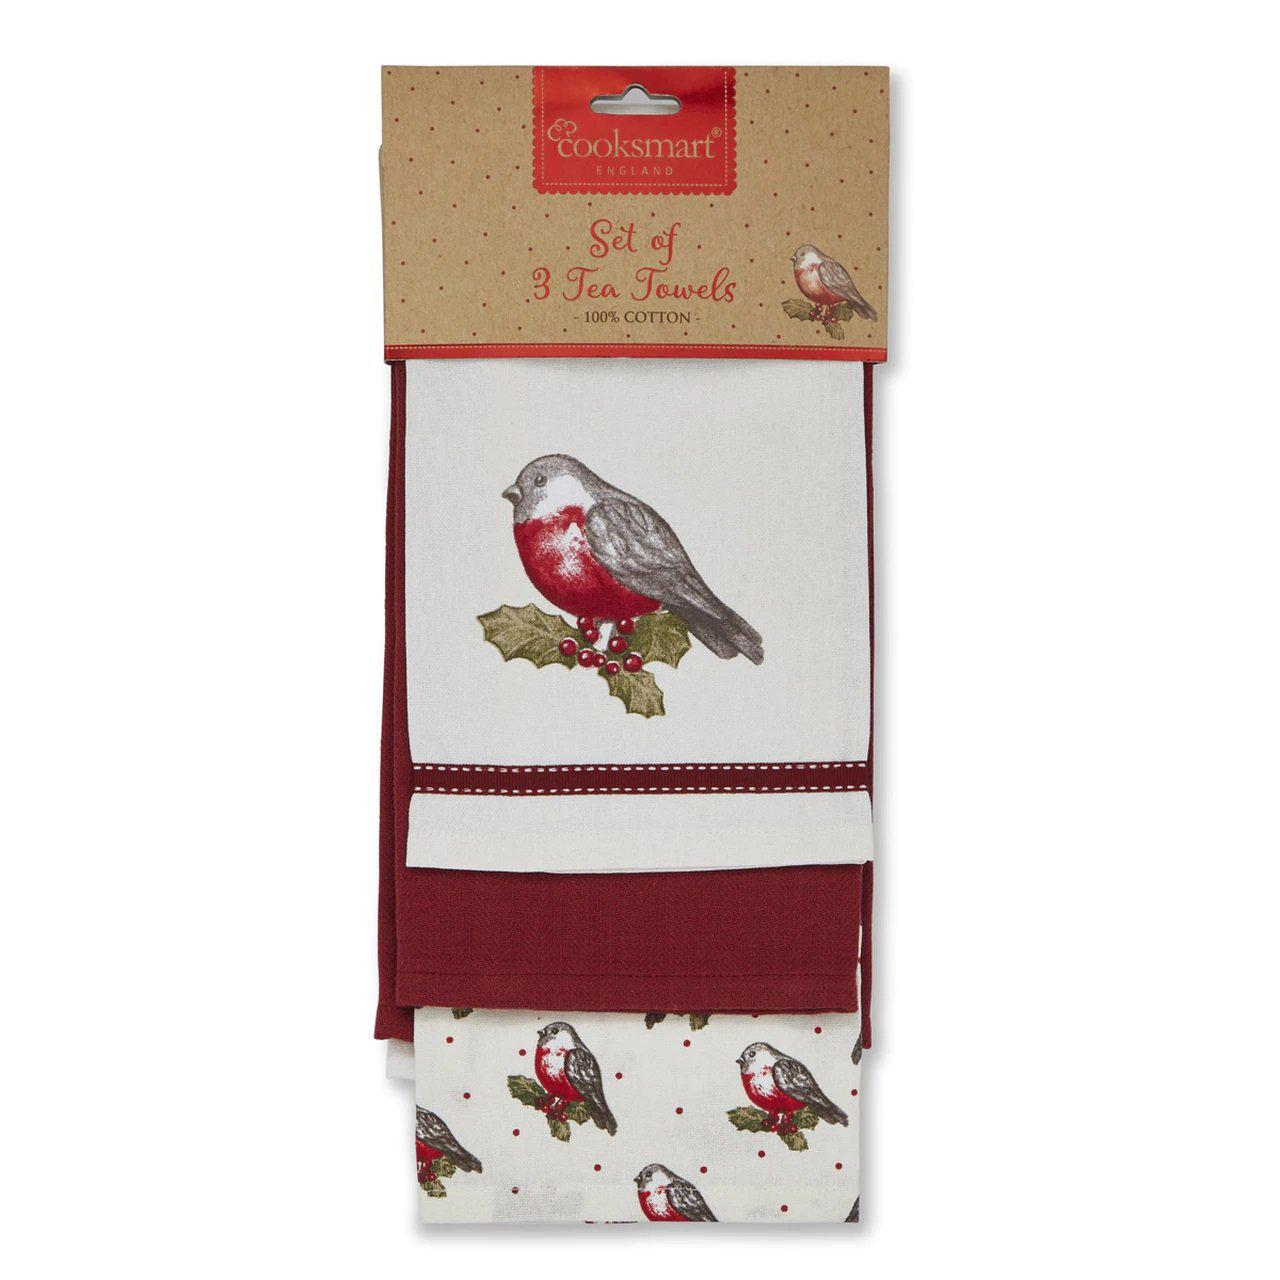 Tea Towels Pack of 3 - Red Red Robin-Homeware-City Look-Thursford Enterprises Ltd.